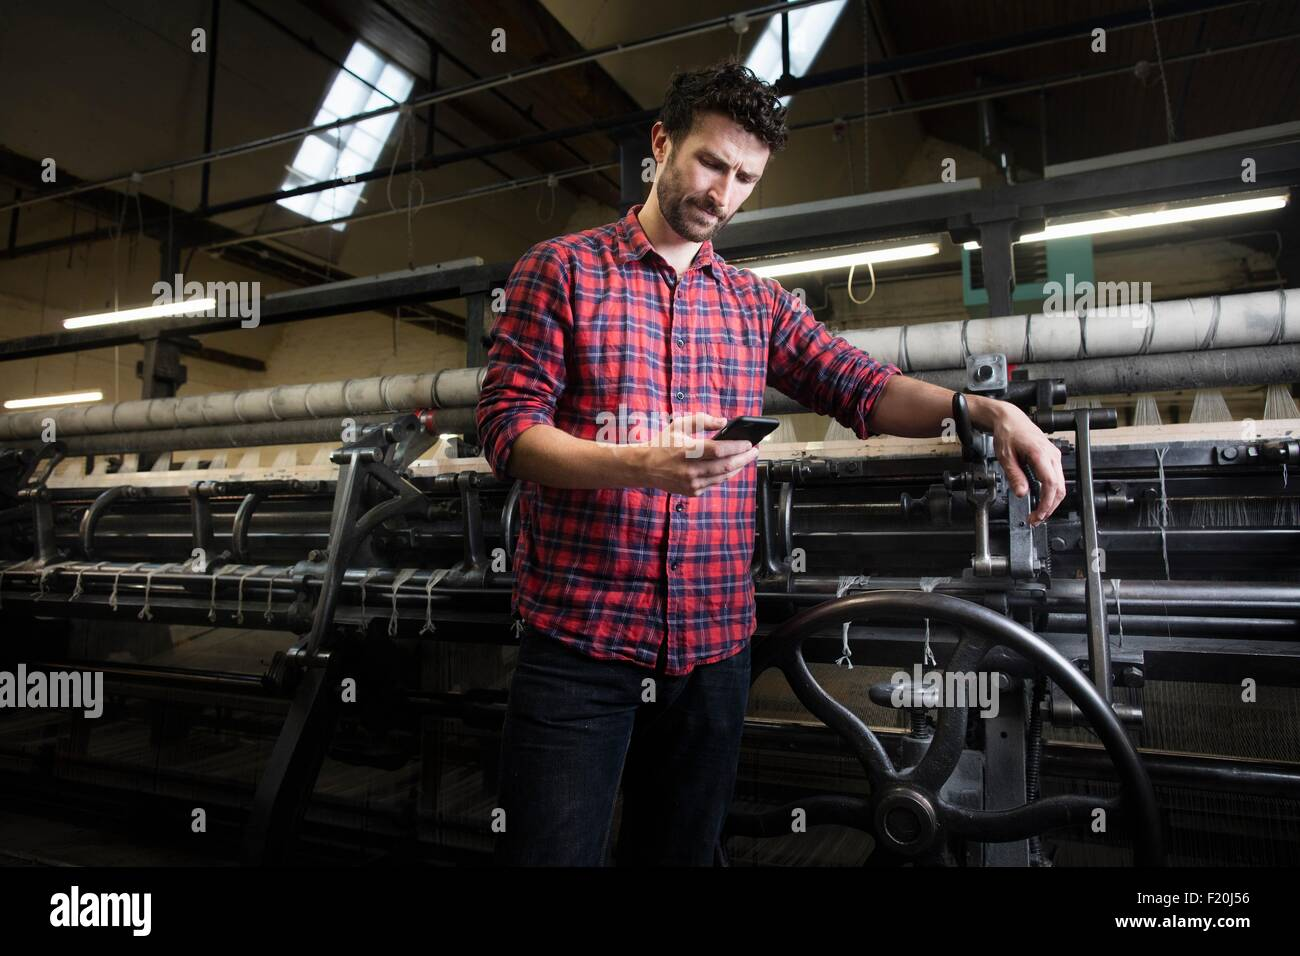 Male weaver smartphone texting next to old weaving machine in textile mill - Stock Image